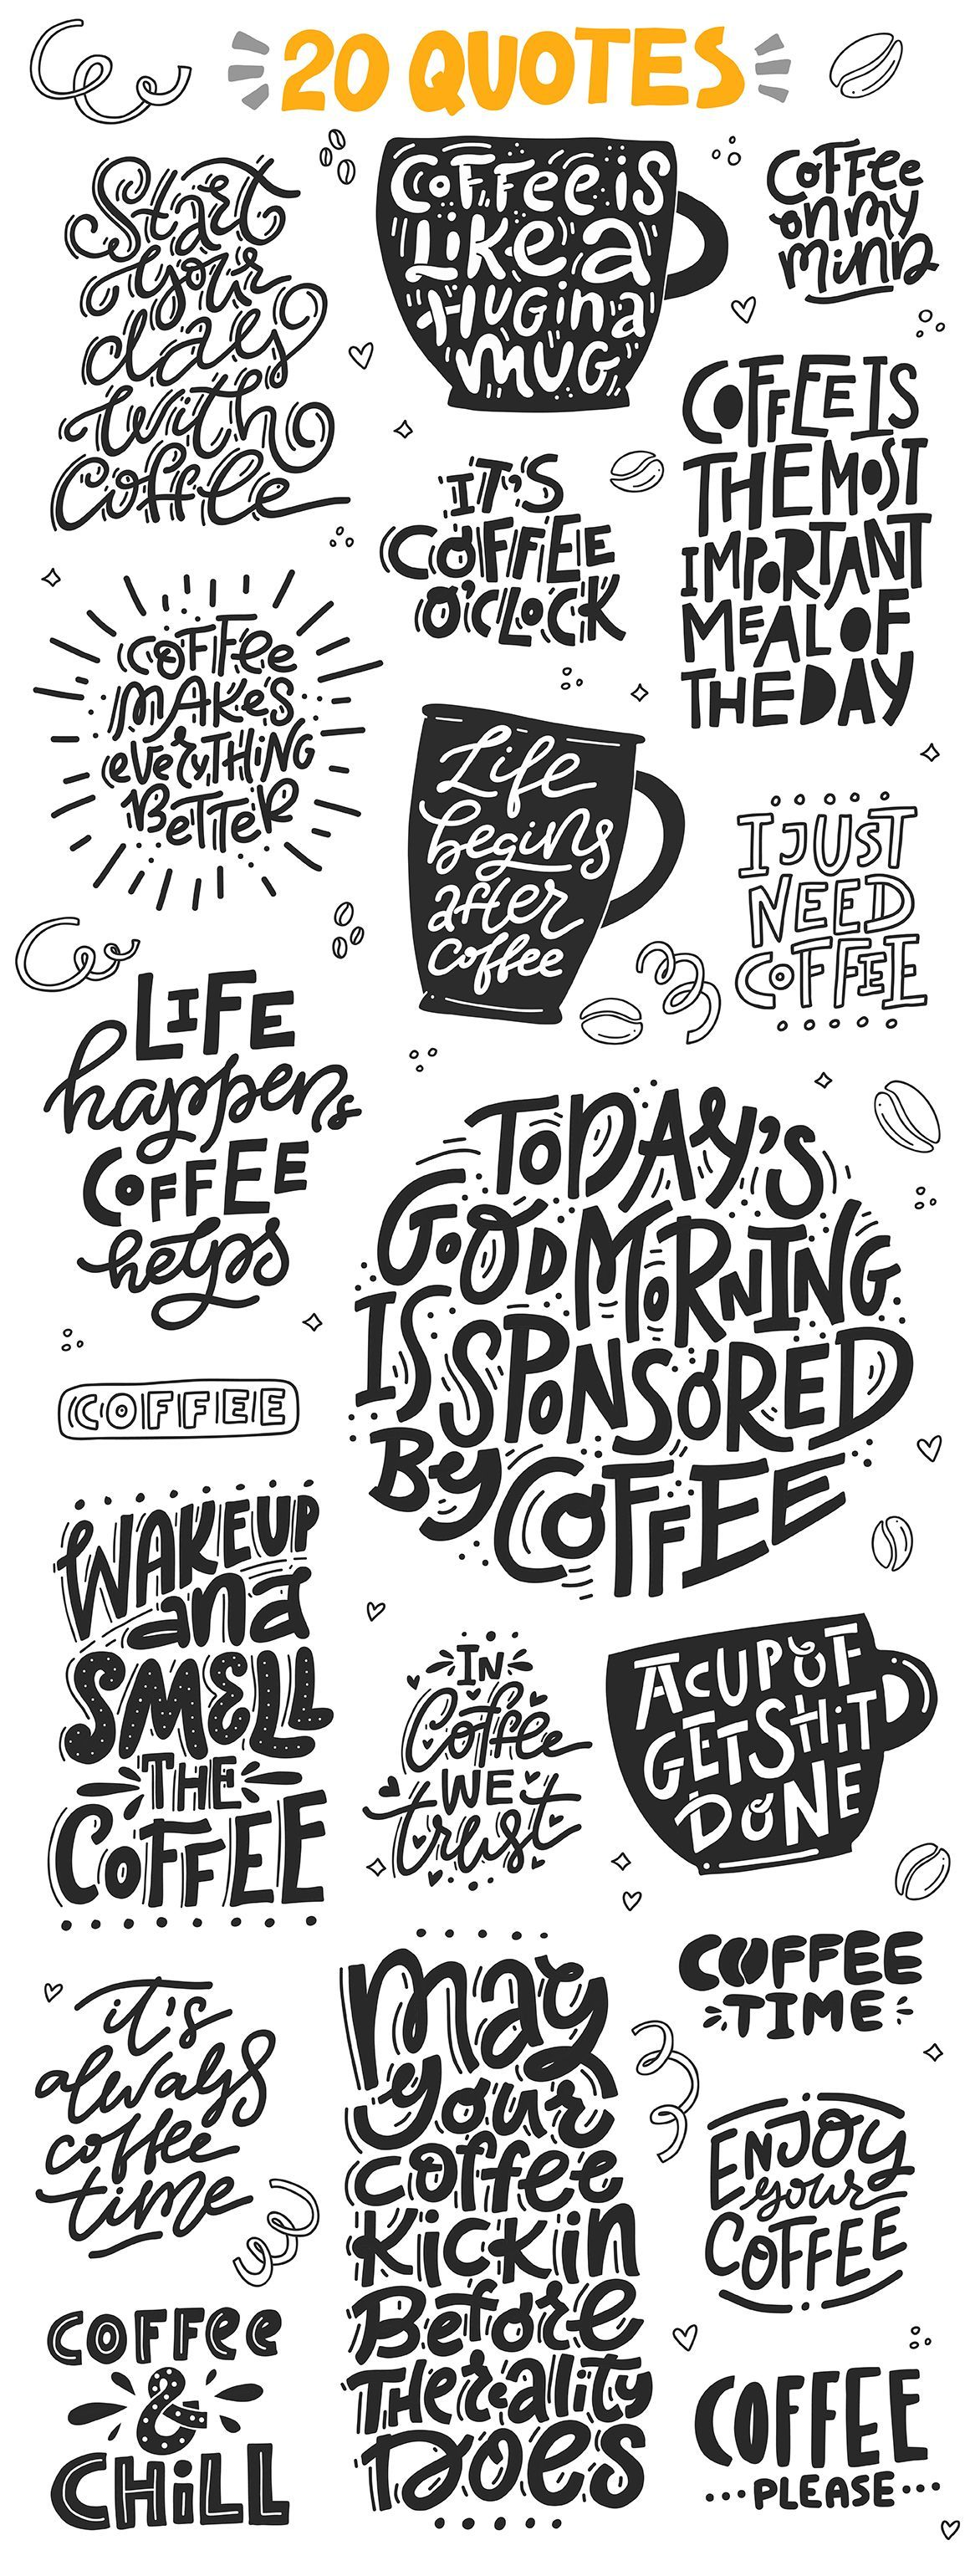 Coffee Lovers - cliart & lettering By Favete Art | TheHungryJPEG.com